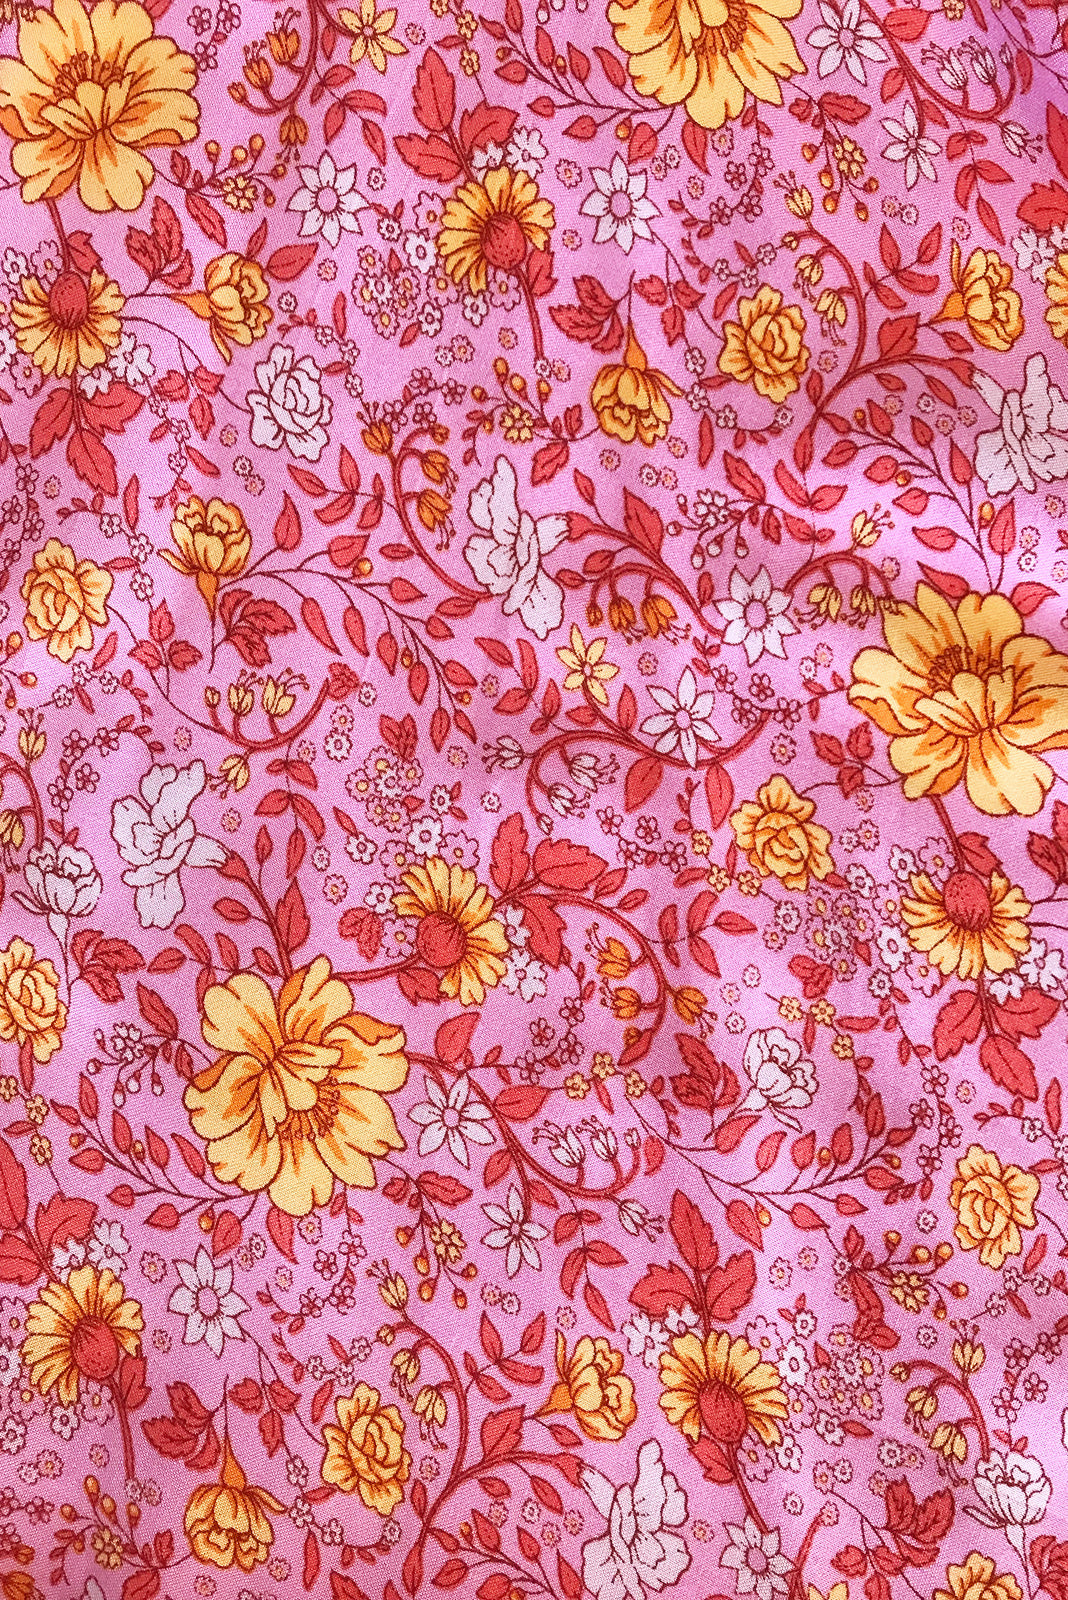 Fabric swatch, 100% woven viscose, bright pink base with medium gold, orange, soft pink and coral floral print.